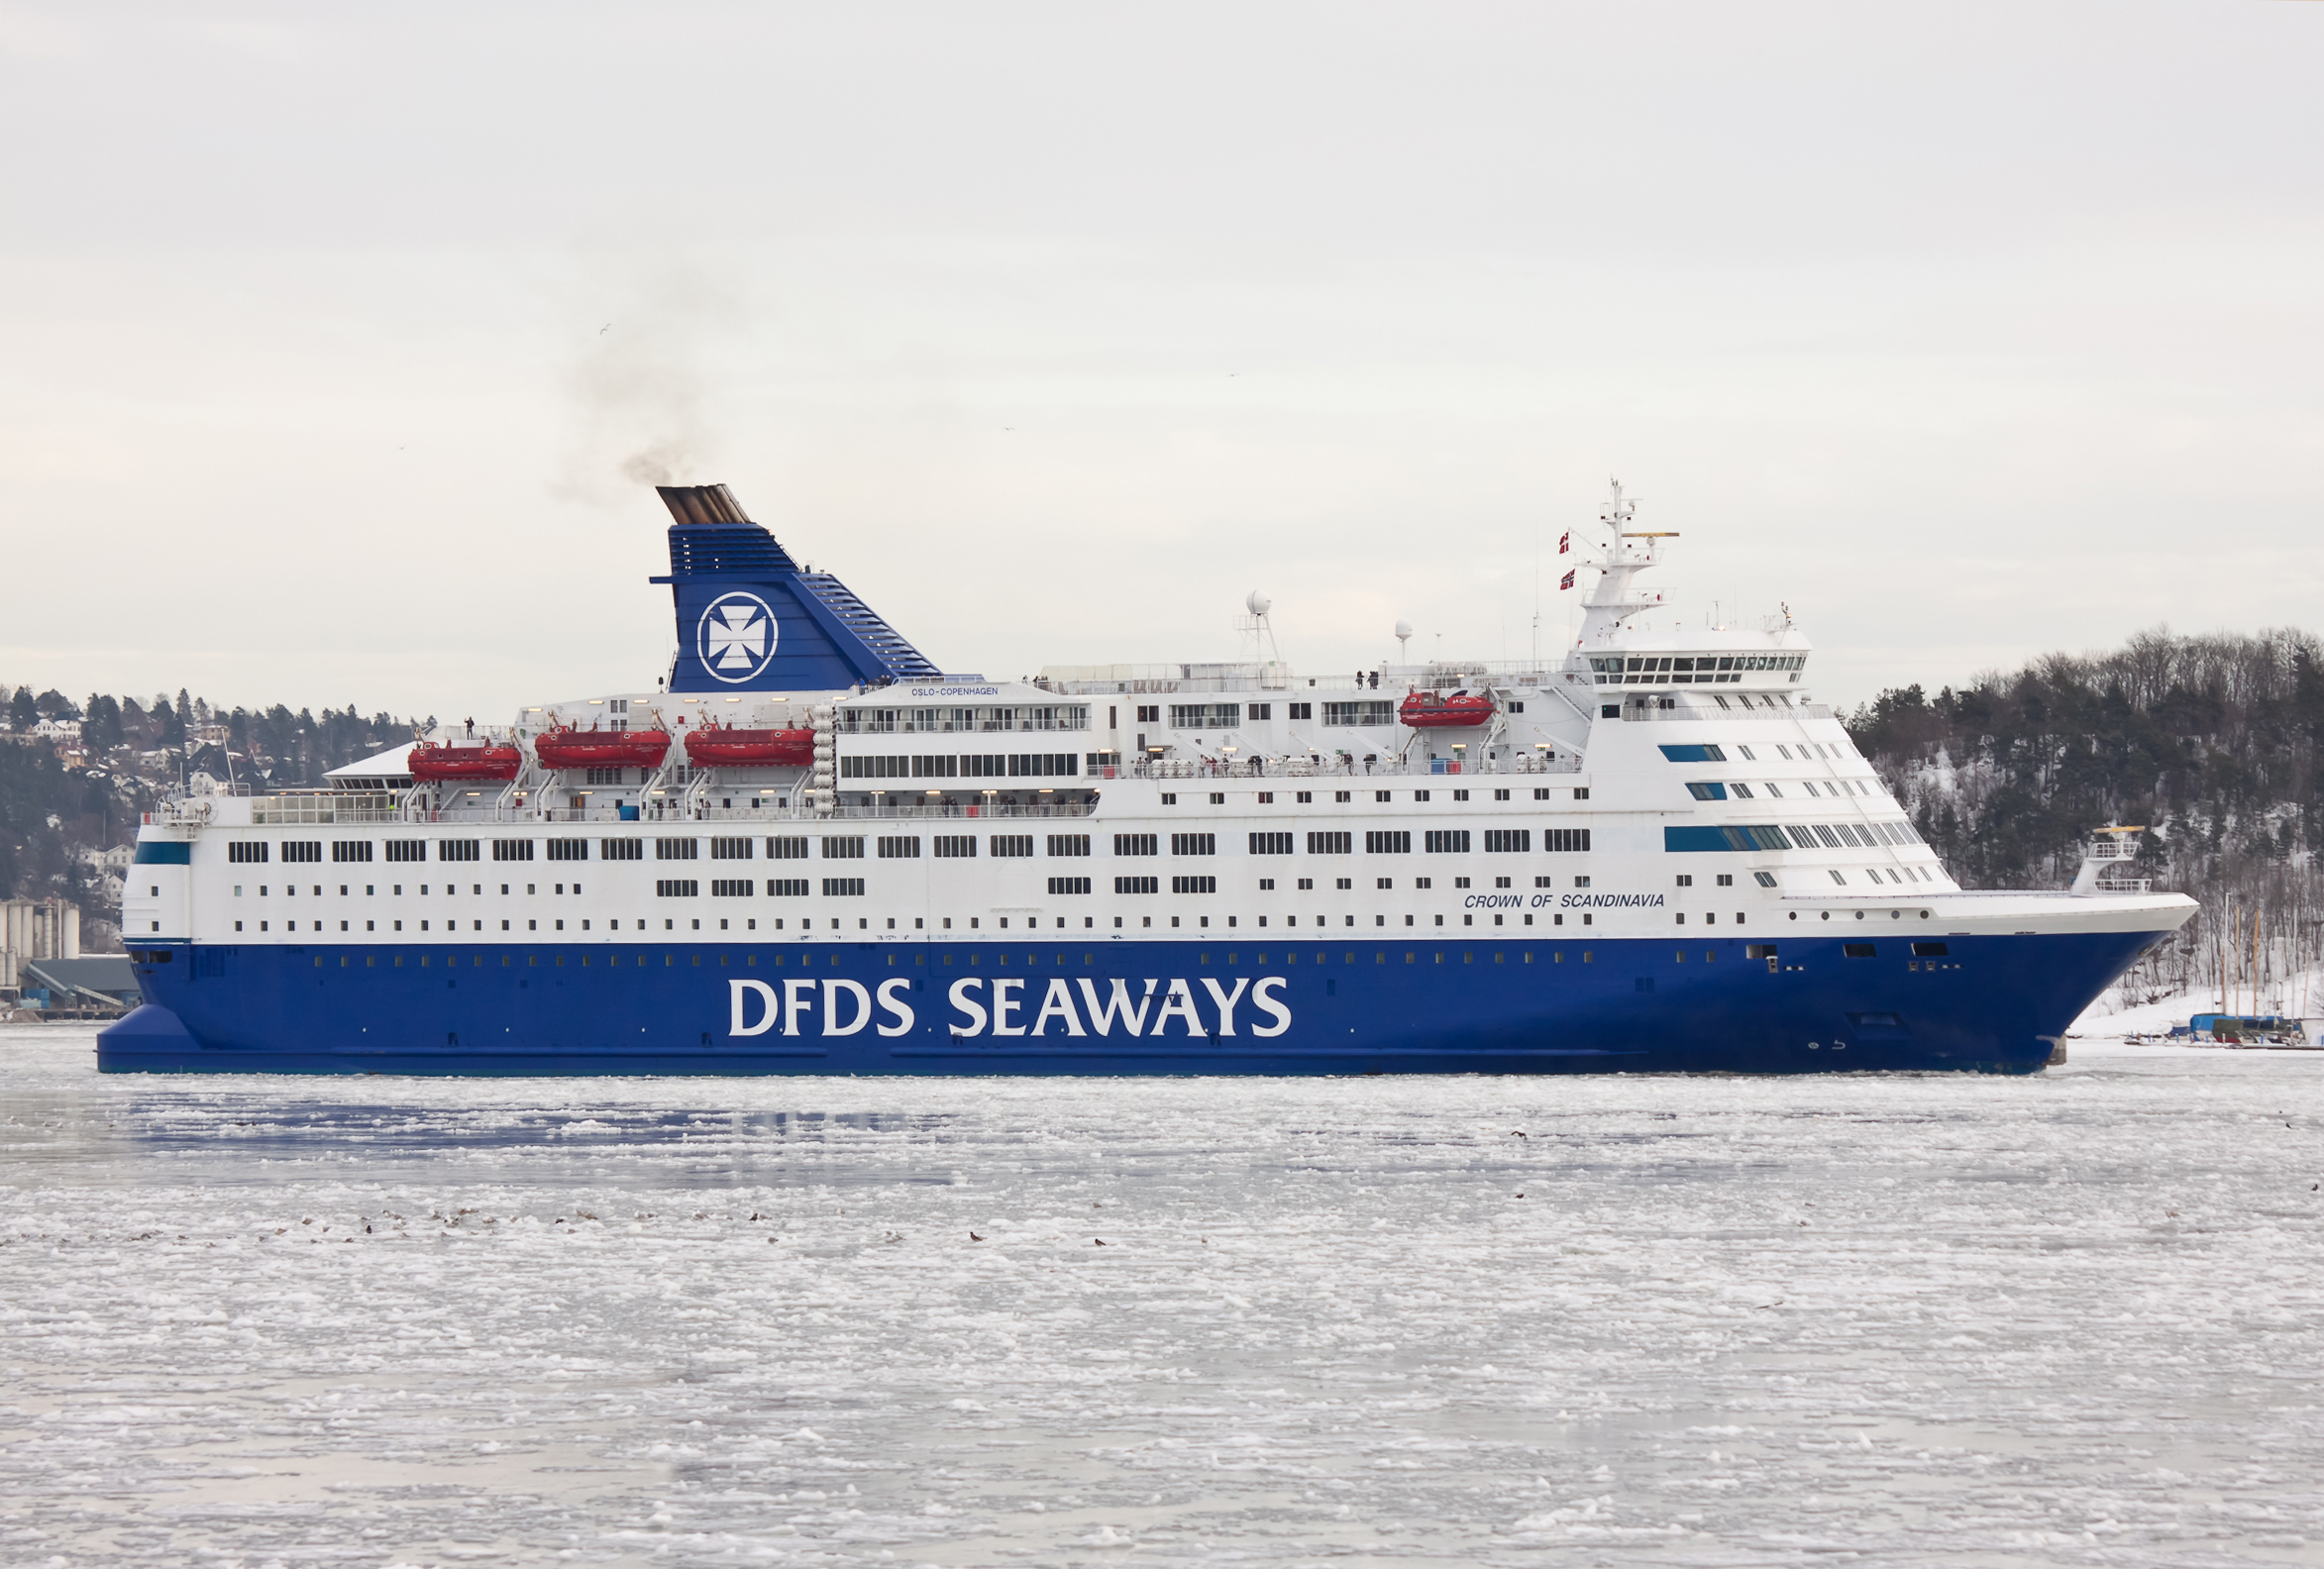 dfds crown seaways